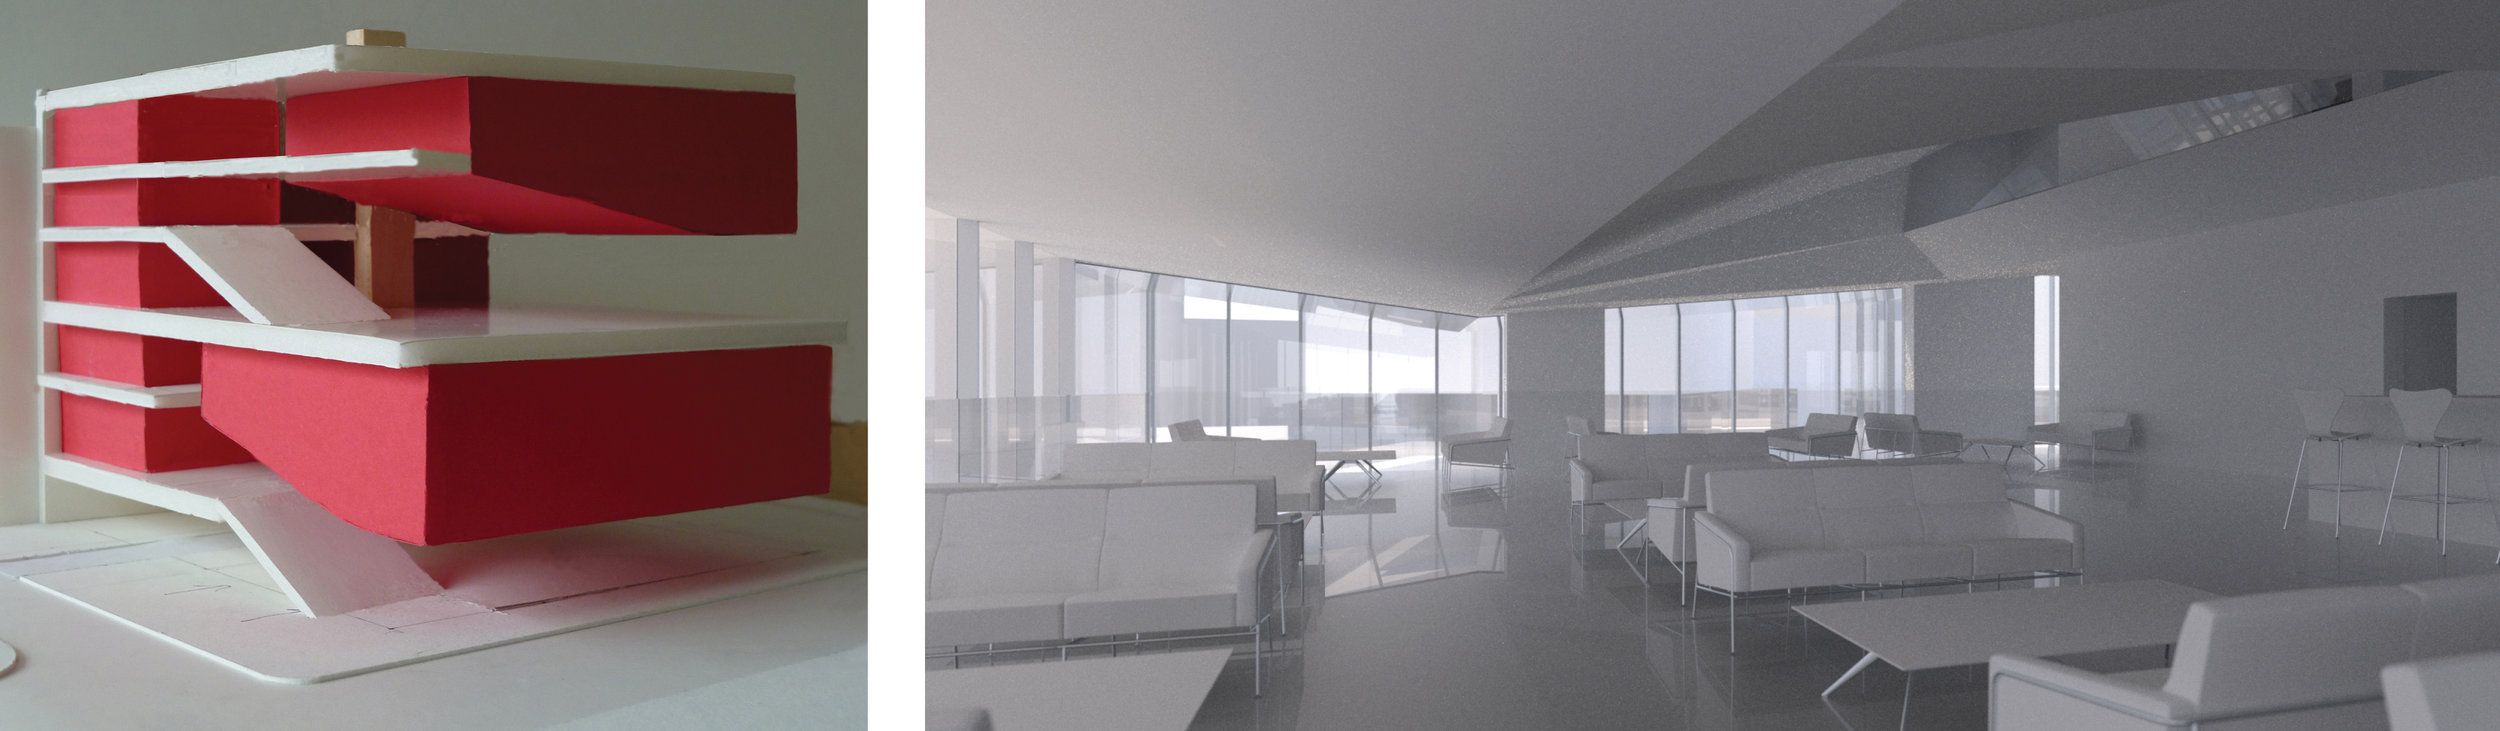 LEFT: CONCEPT MASSING MODEL; RIGHT: FILM CENTER BAR AND LOUNGE